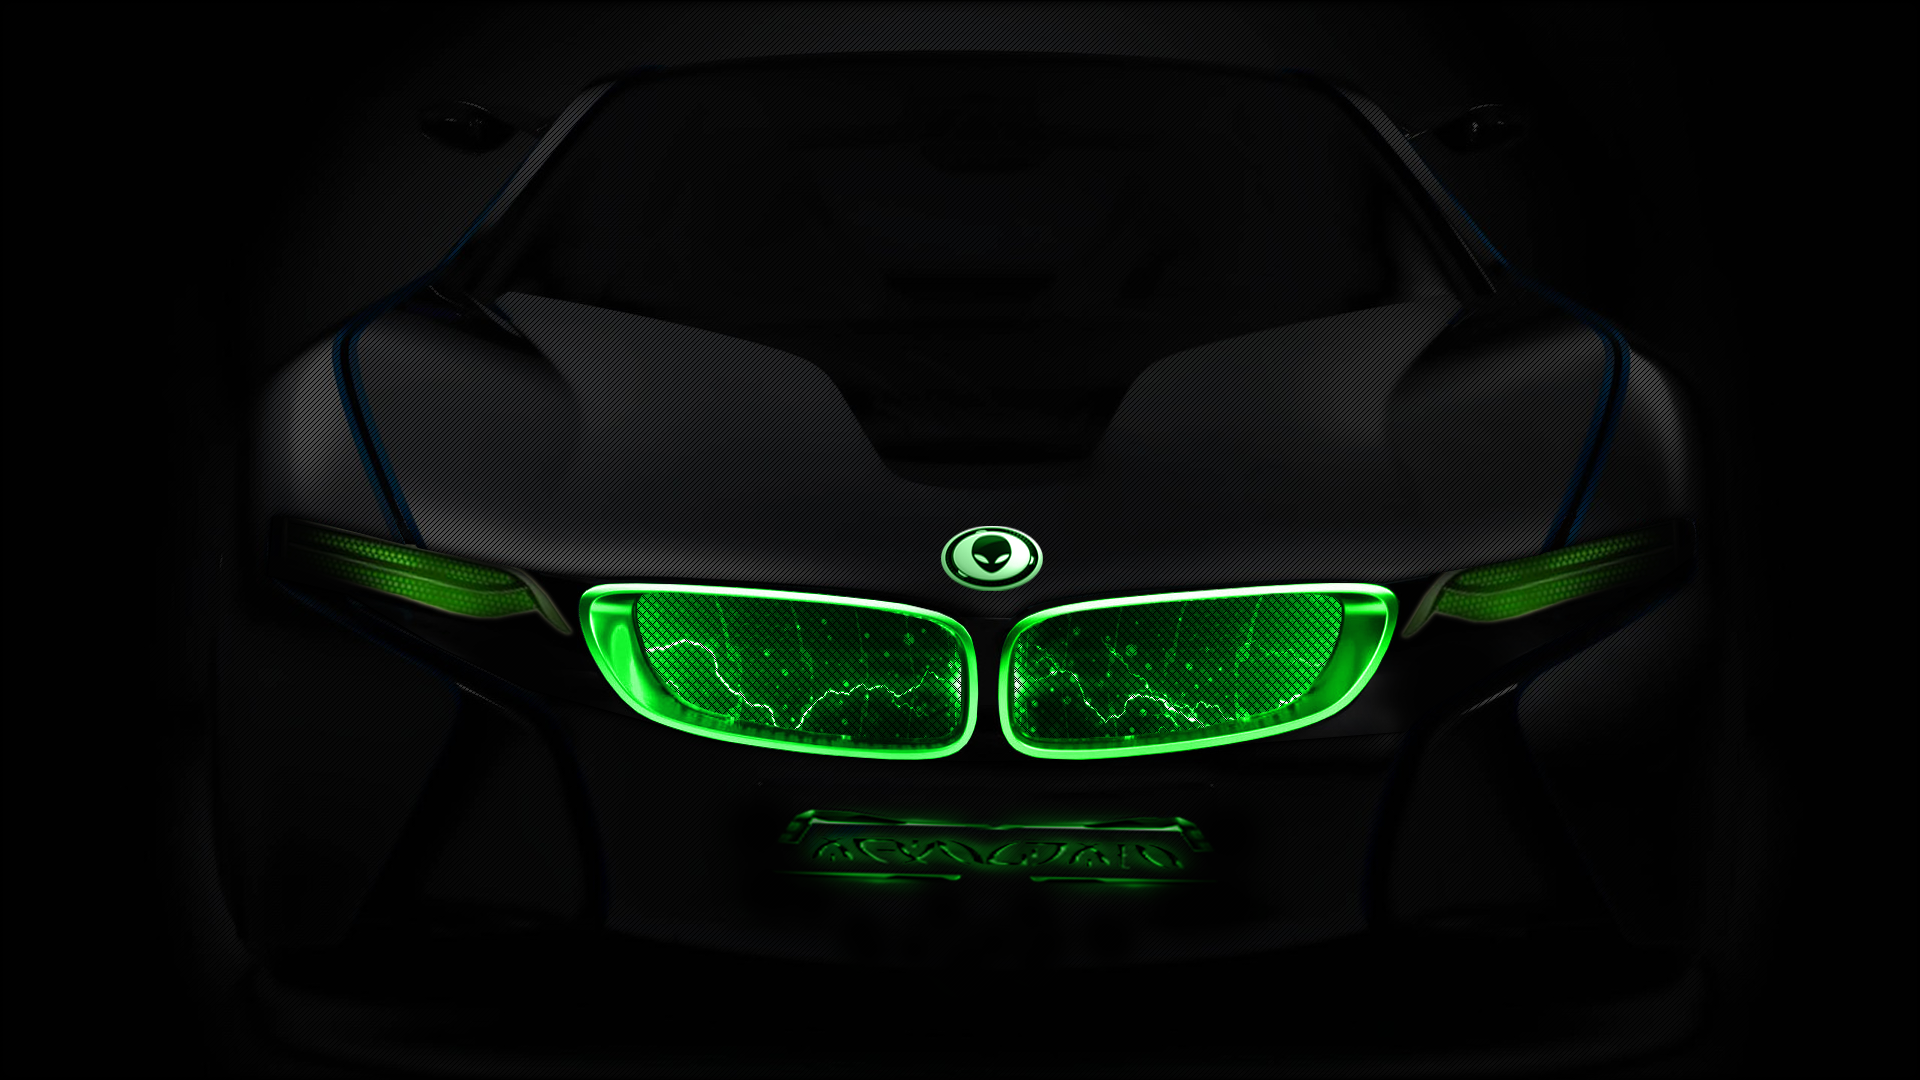 alienware car